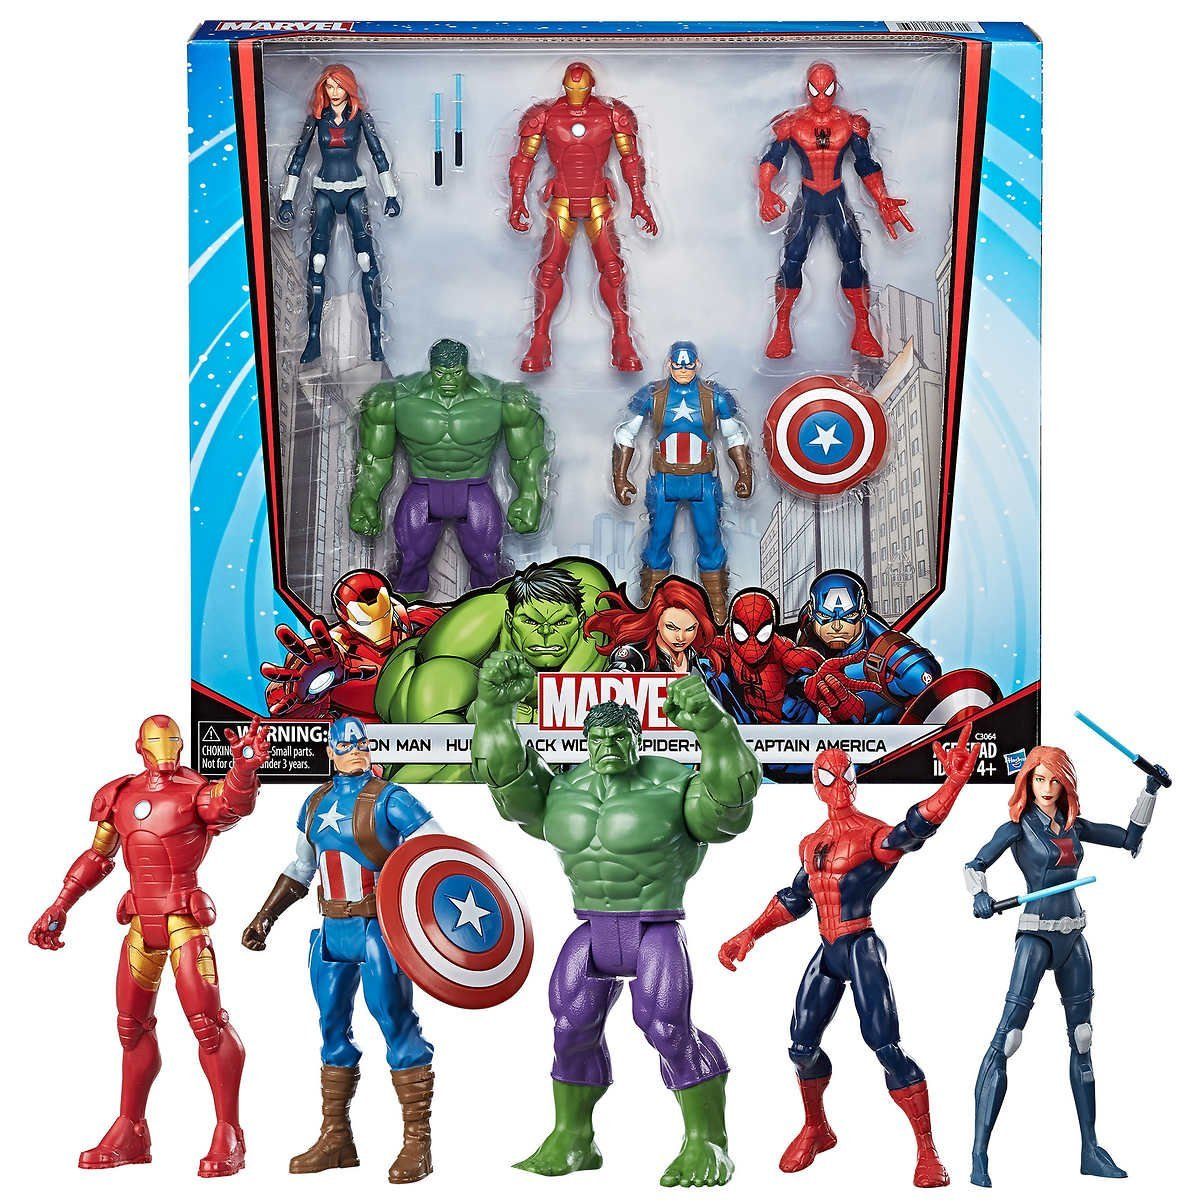 """ALL NEW!!! Marvel Core Characters Action Figures 5-Pack includes Black Widow, Iron Man, Spider-Man, Captain America, and Hulk, 6"""" Figures, Assemble.., By Hasbro"""